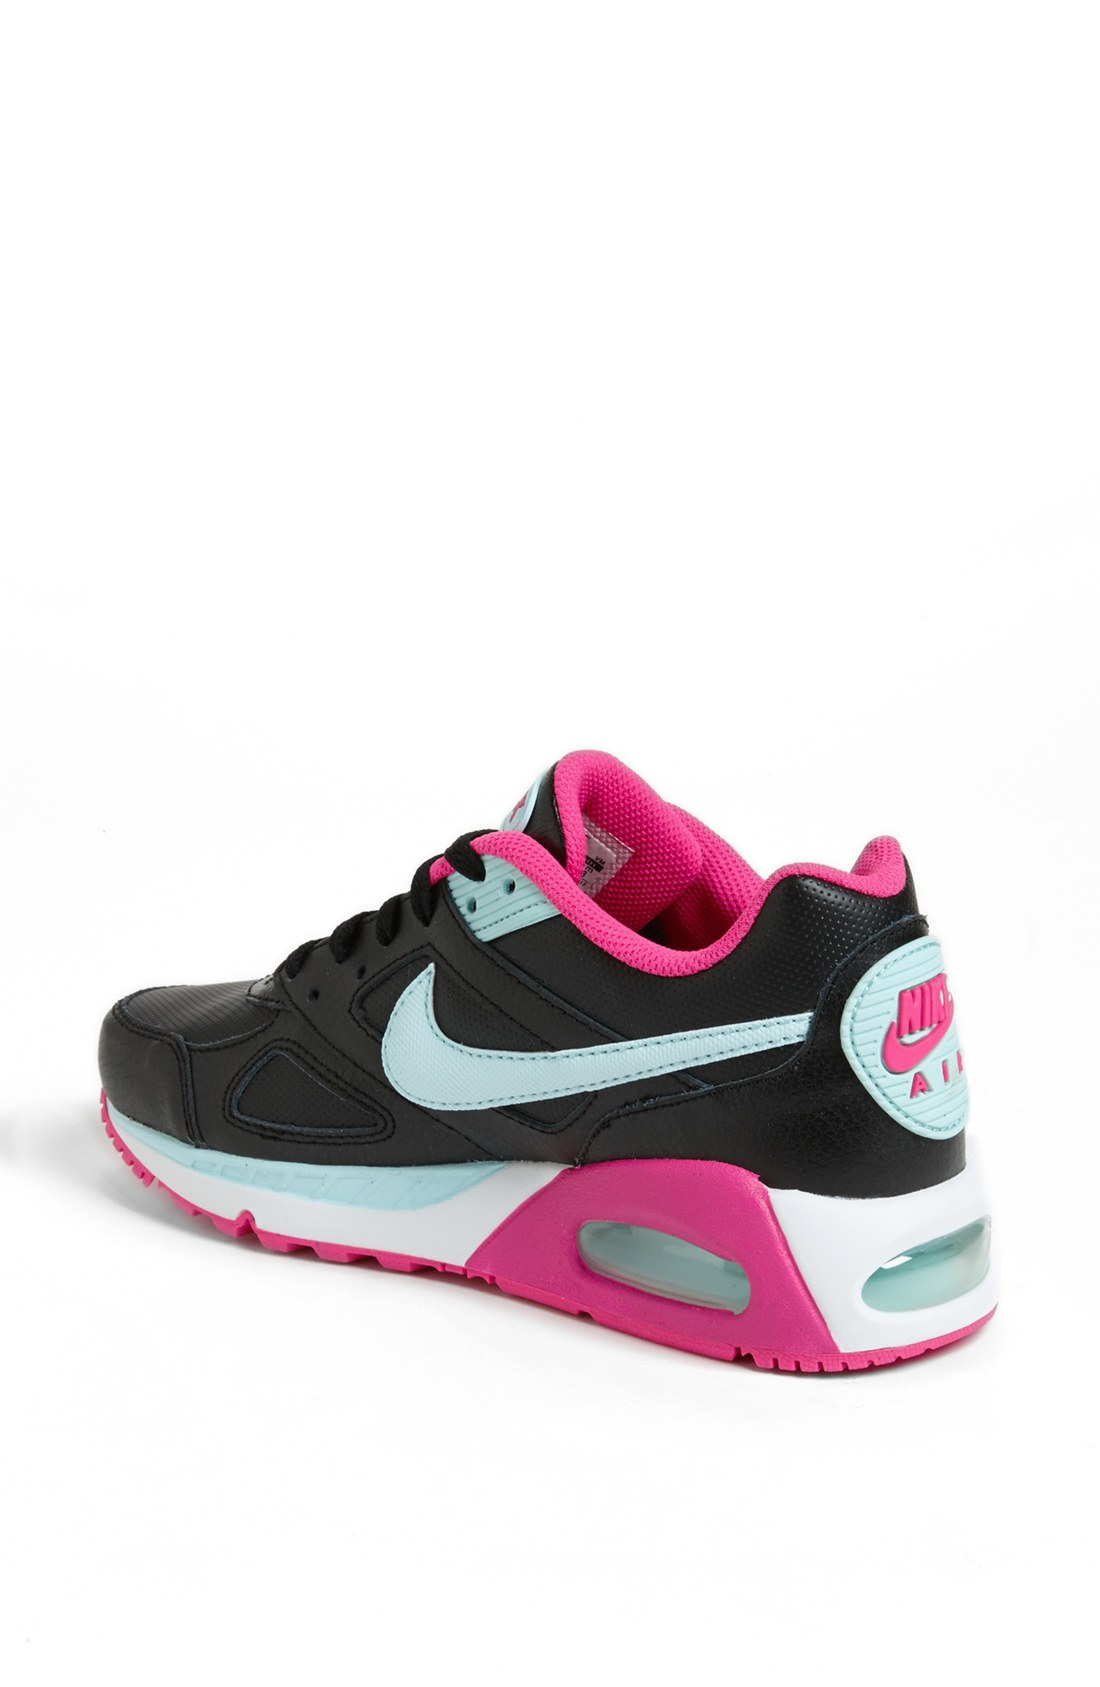 coupon code nike air max ivo ltr 580520 444 43 amazon shoes neri sportivo  11503 181c4  where can i buy nike air max 2013 amazon 6c838 bd7bf 70c09fed8